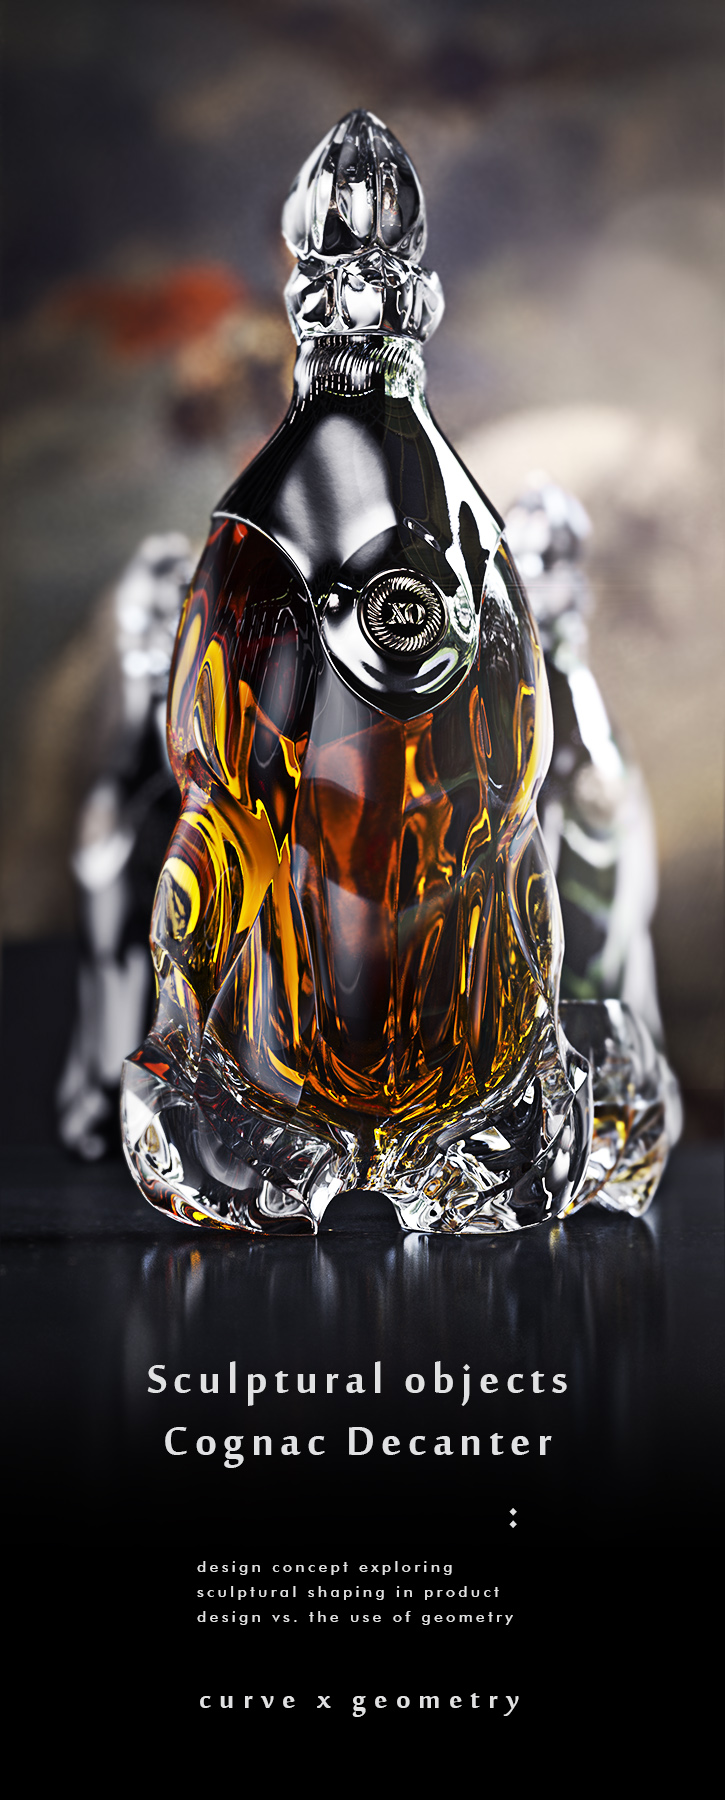 luxury cognac bottle concept